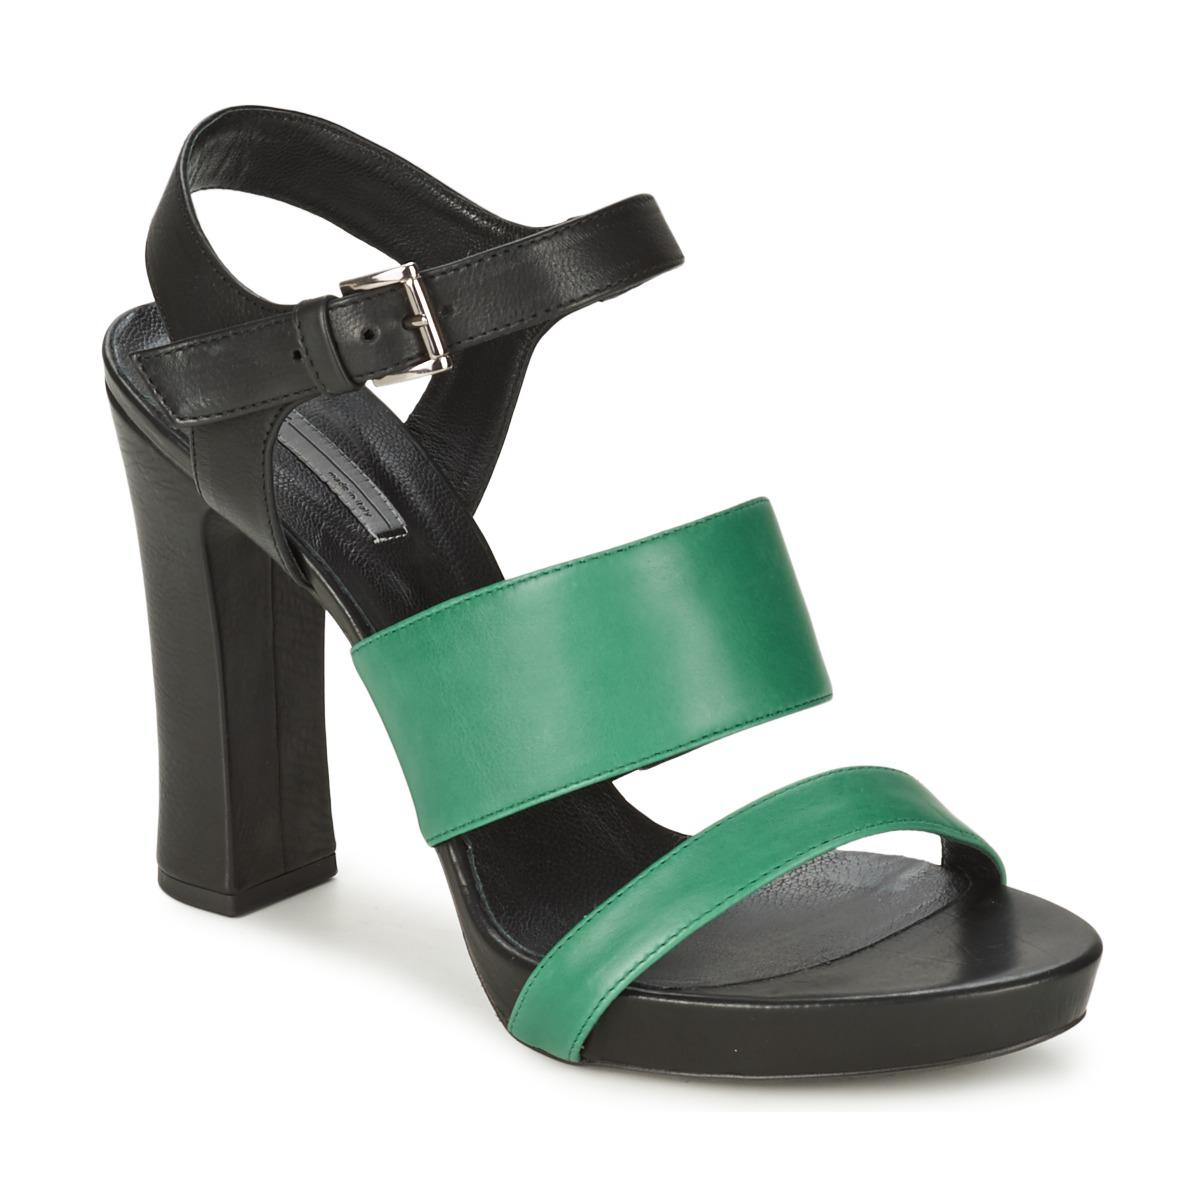 c75a506d3da2 Vic Matié Clooney Women s Sandals In Black in Black - Lyst